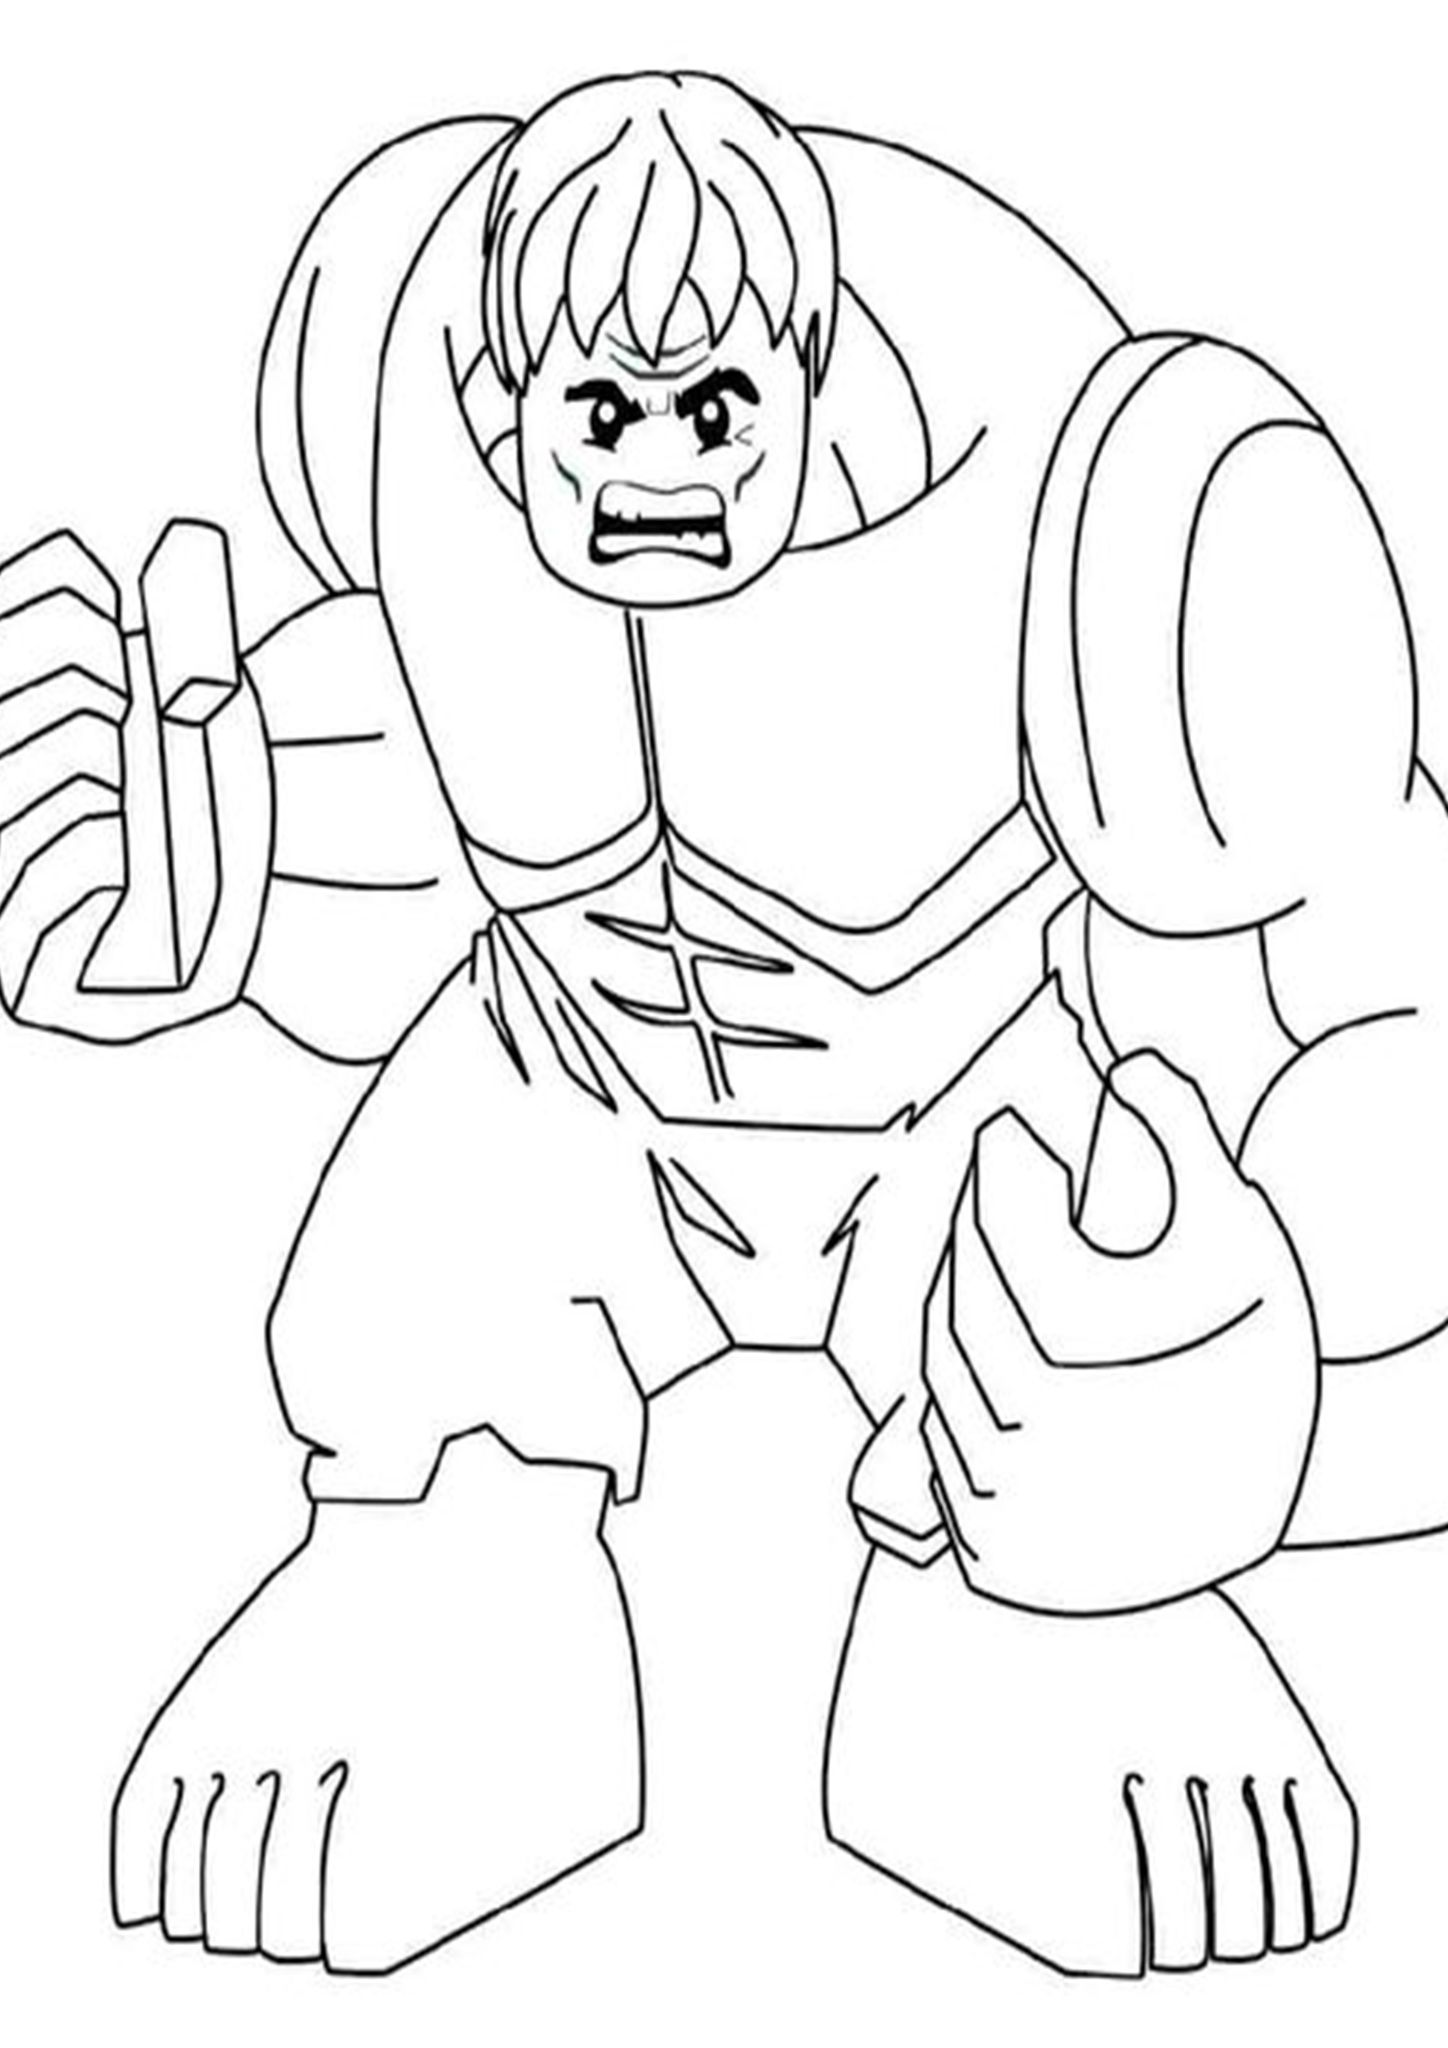 Free Easy To Print Hulk Coloring Pages Lego Coloring Pages Hulk Coloring Pages Avengers Coloring Pages